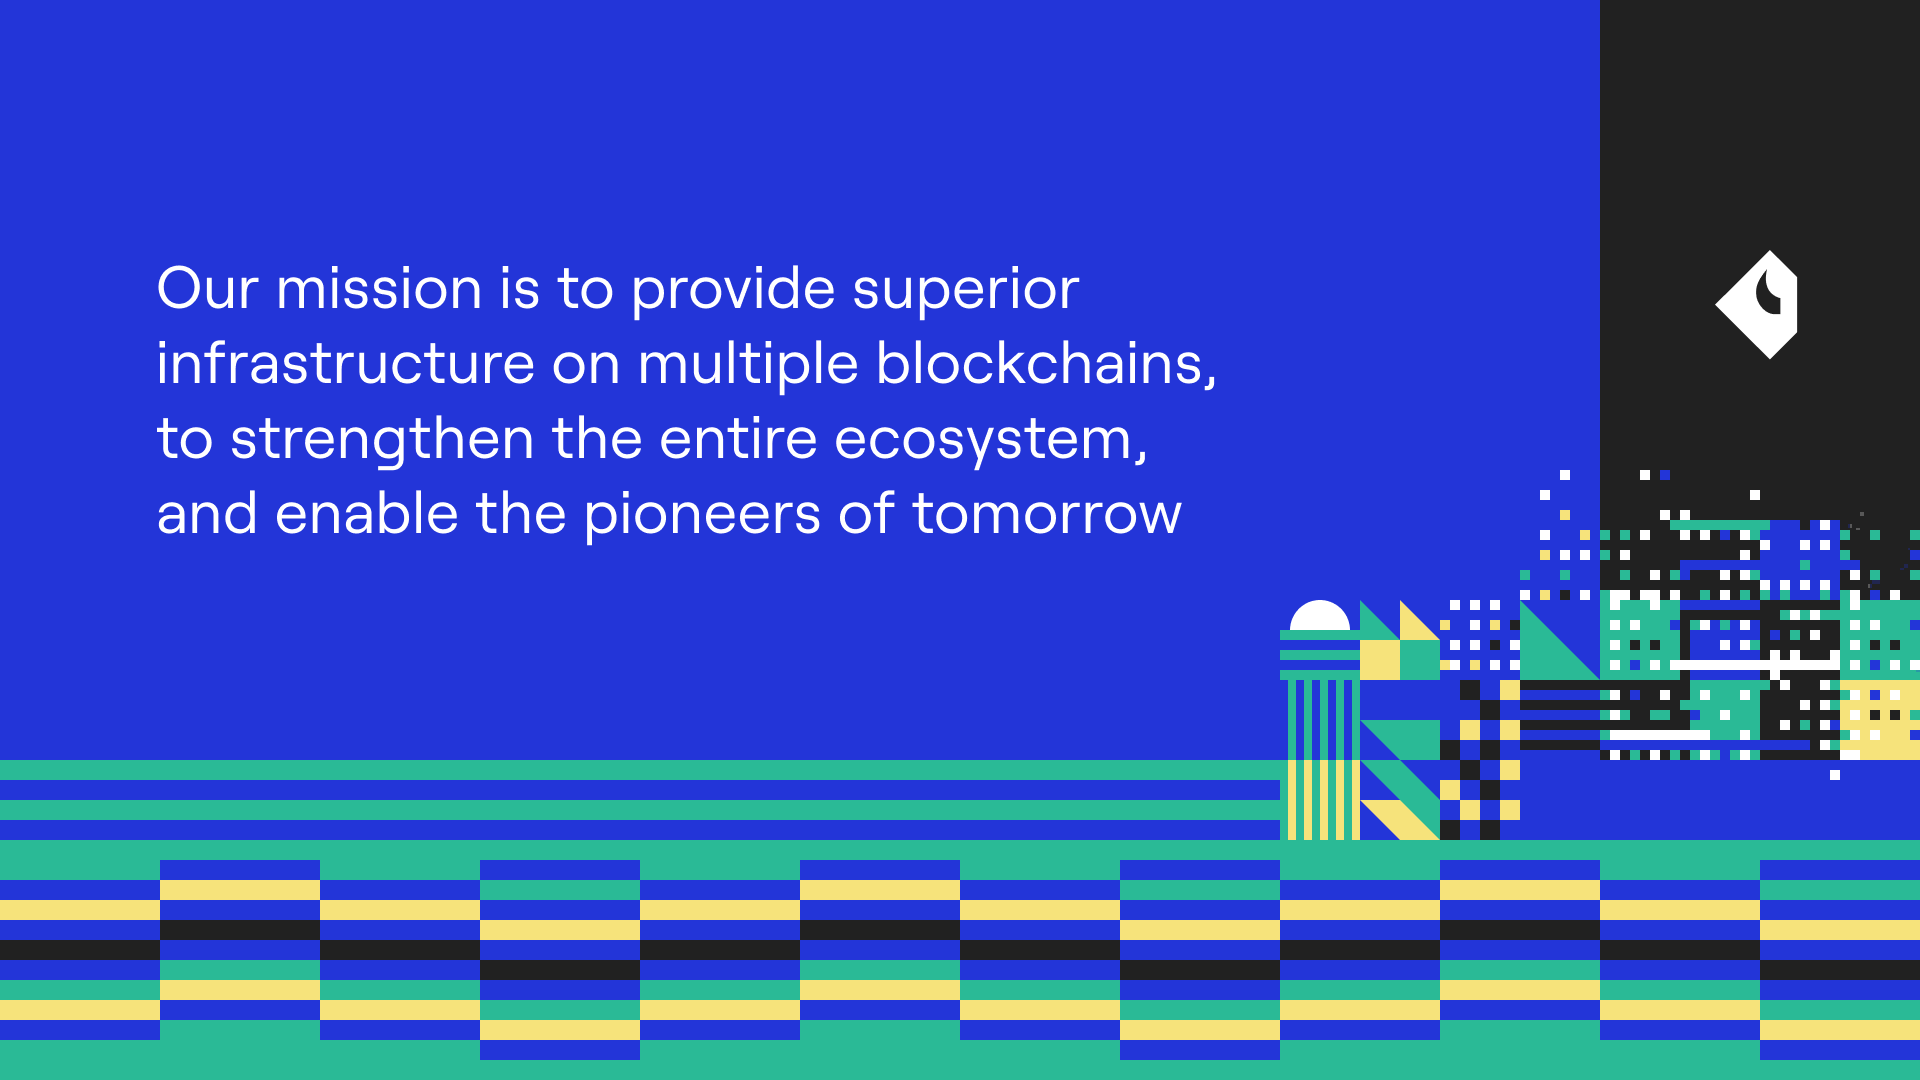 Our mission is to provide superior infrastructure on multiple blockchains, to strengthen the entire ecosystem, and enable the pioneers of tomorrow.